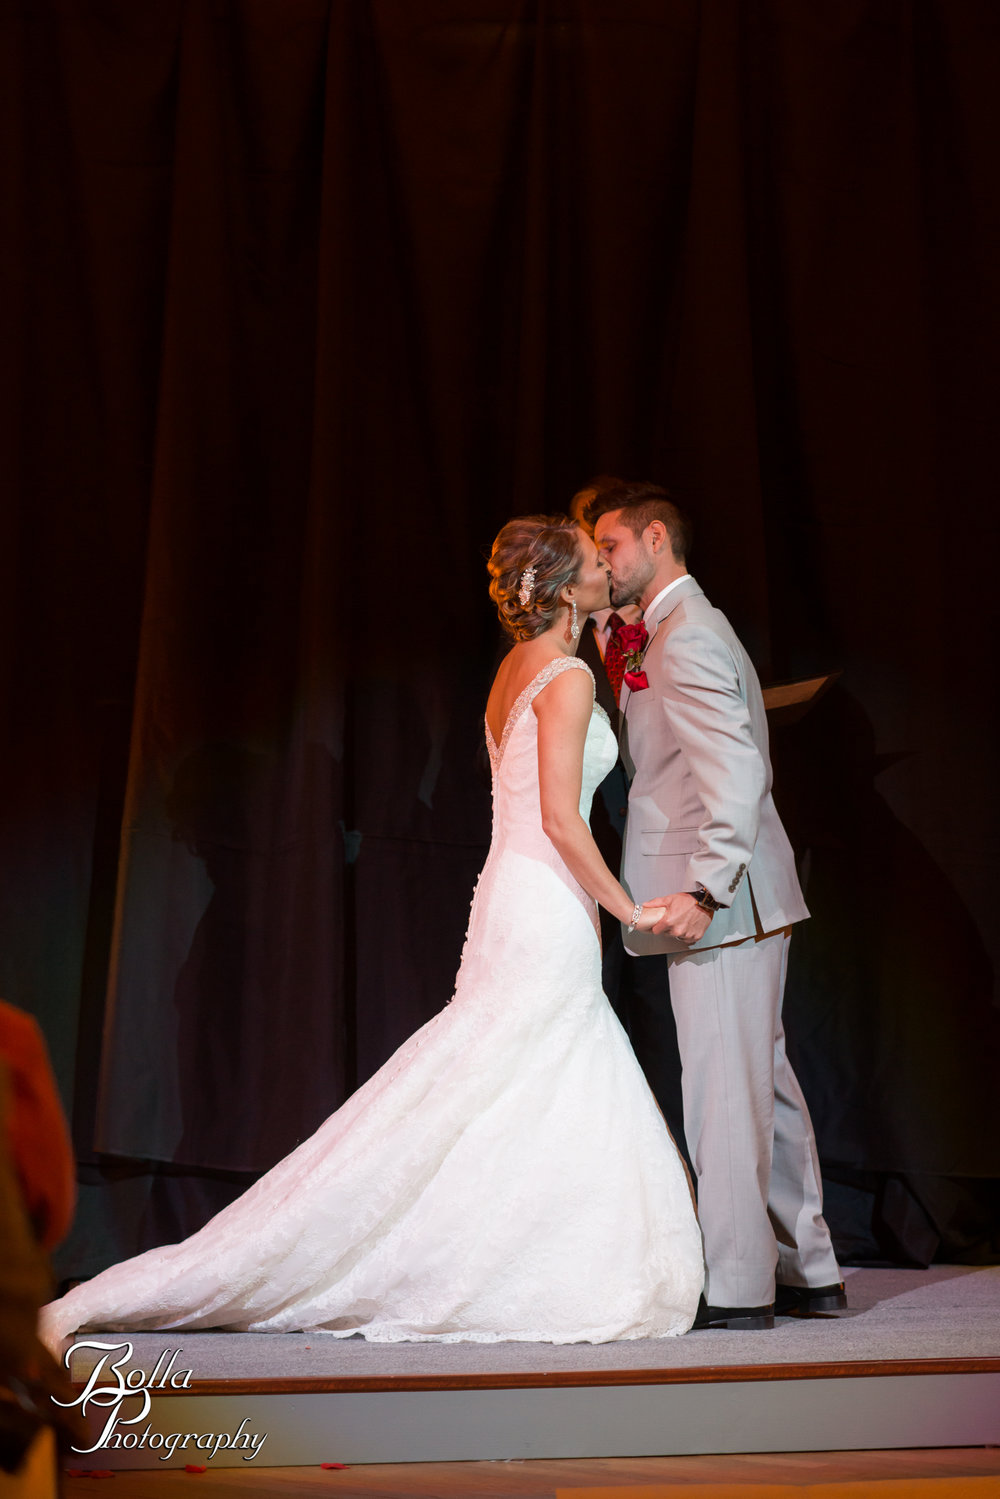 Bolla_photography_edwardsville_wedding_photographer_st_louis_weddings_highland_Allen_Warren_winter_red-0269.jpg